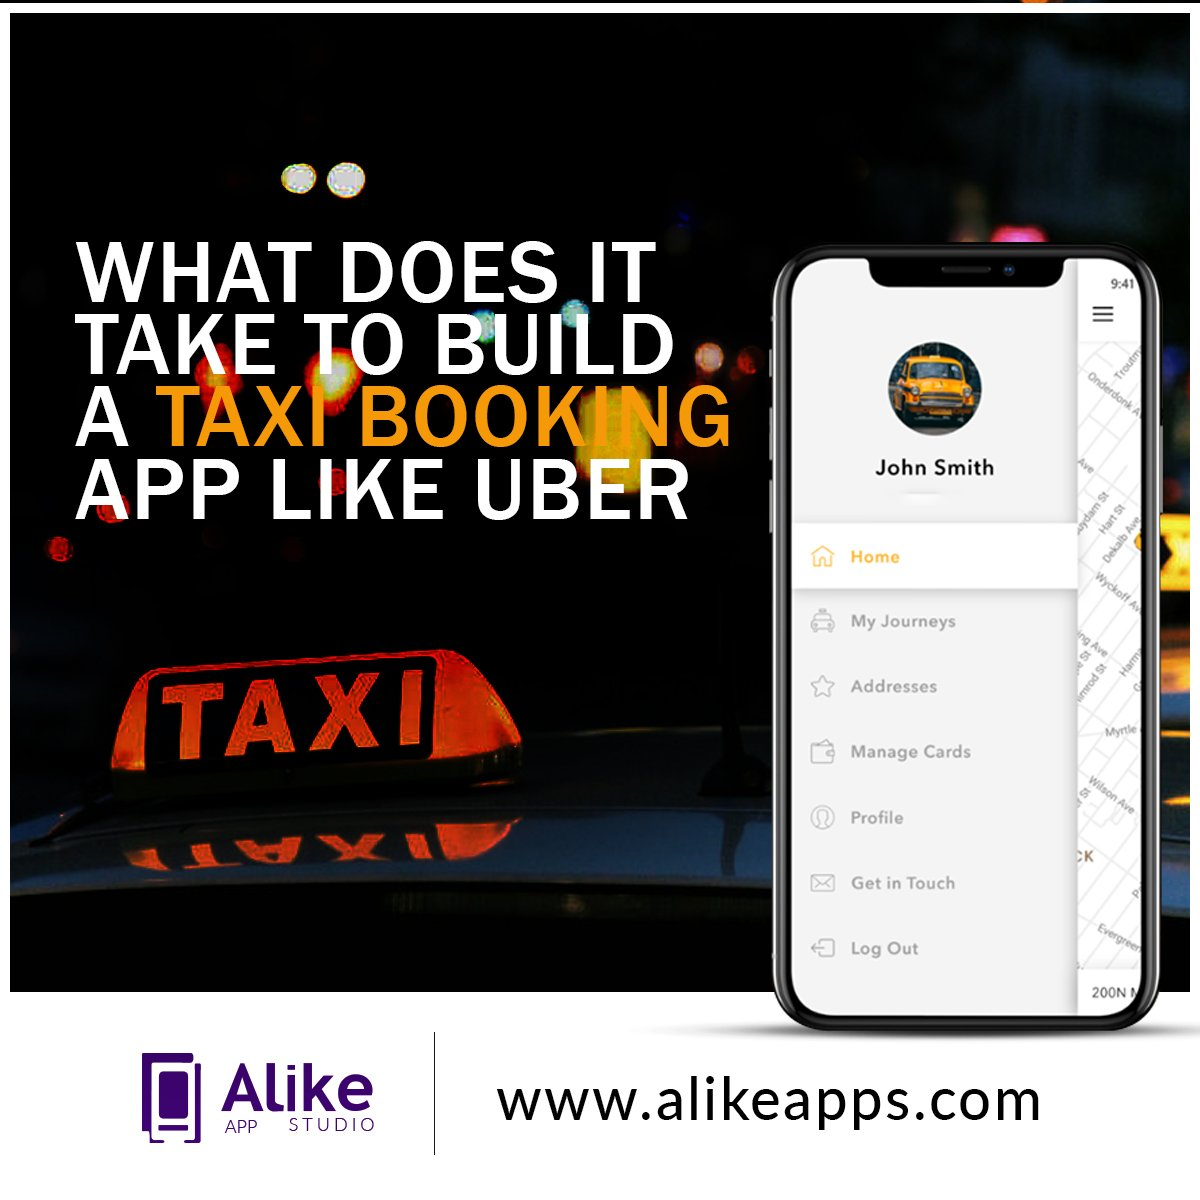 taxiapplikeuber hashtag on Twitter